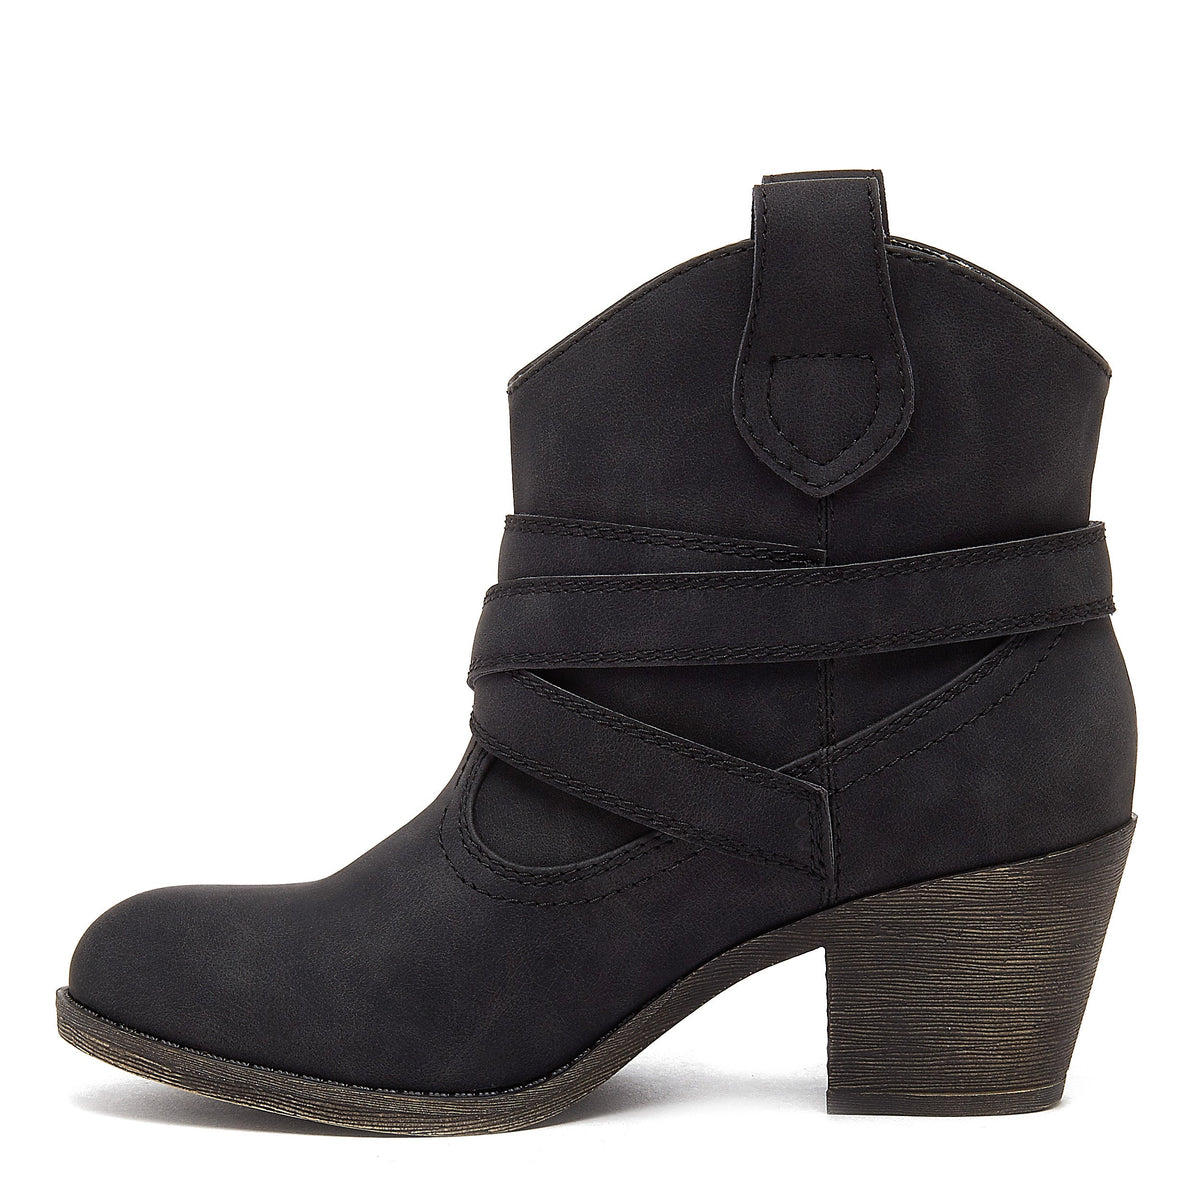 Satire Distressed Black Western Boot